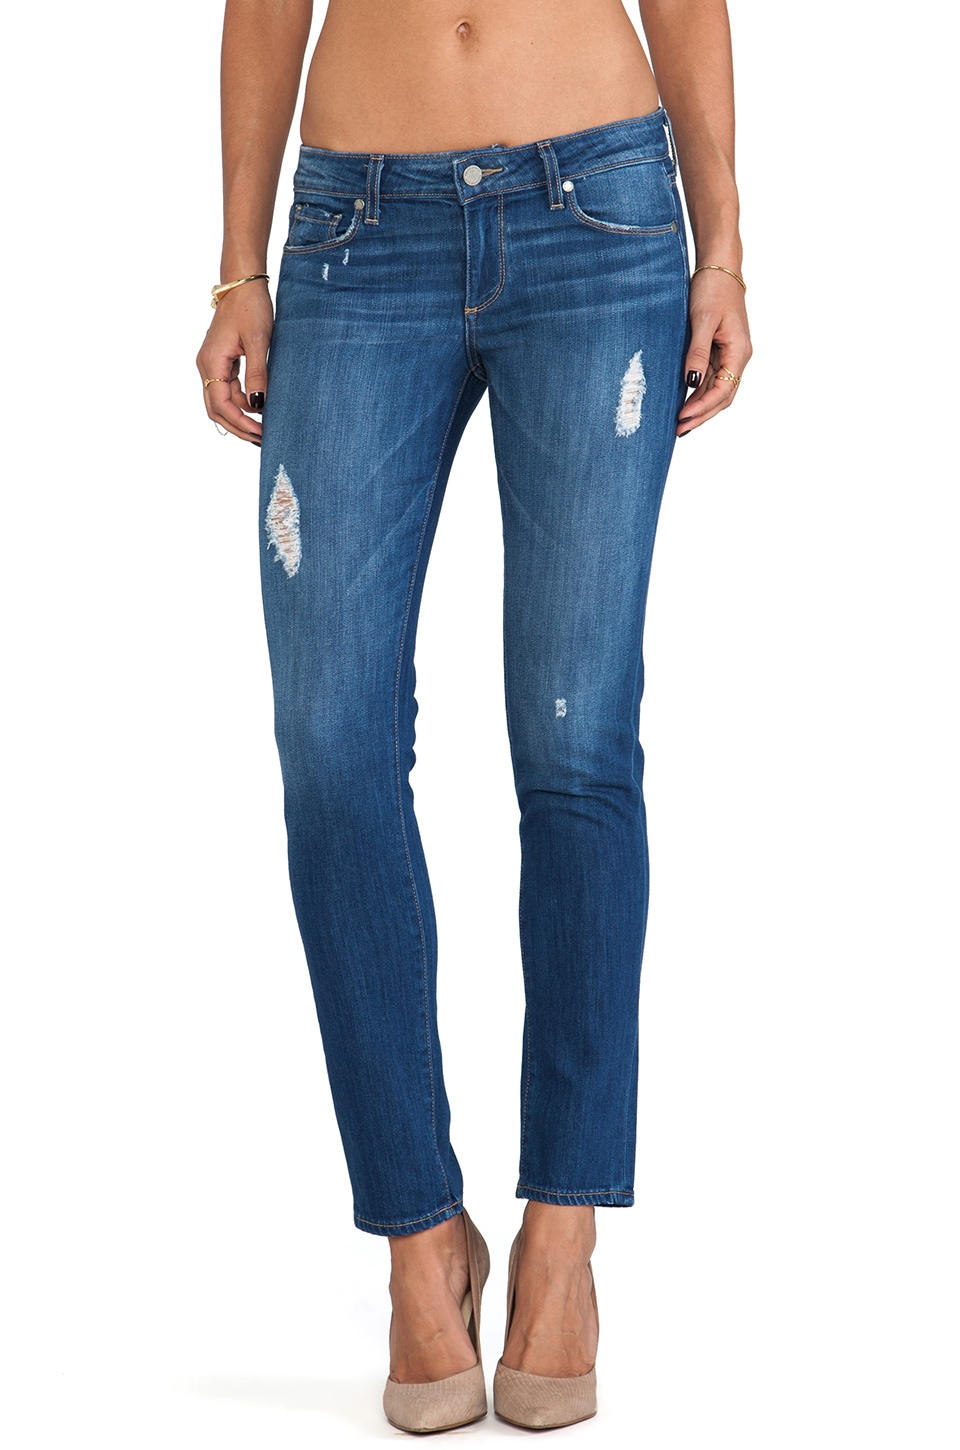 Paige Denim Skyline Ankle Peg in Albany